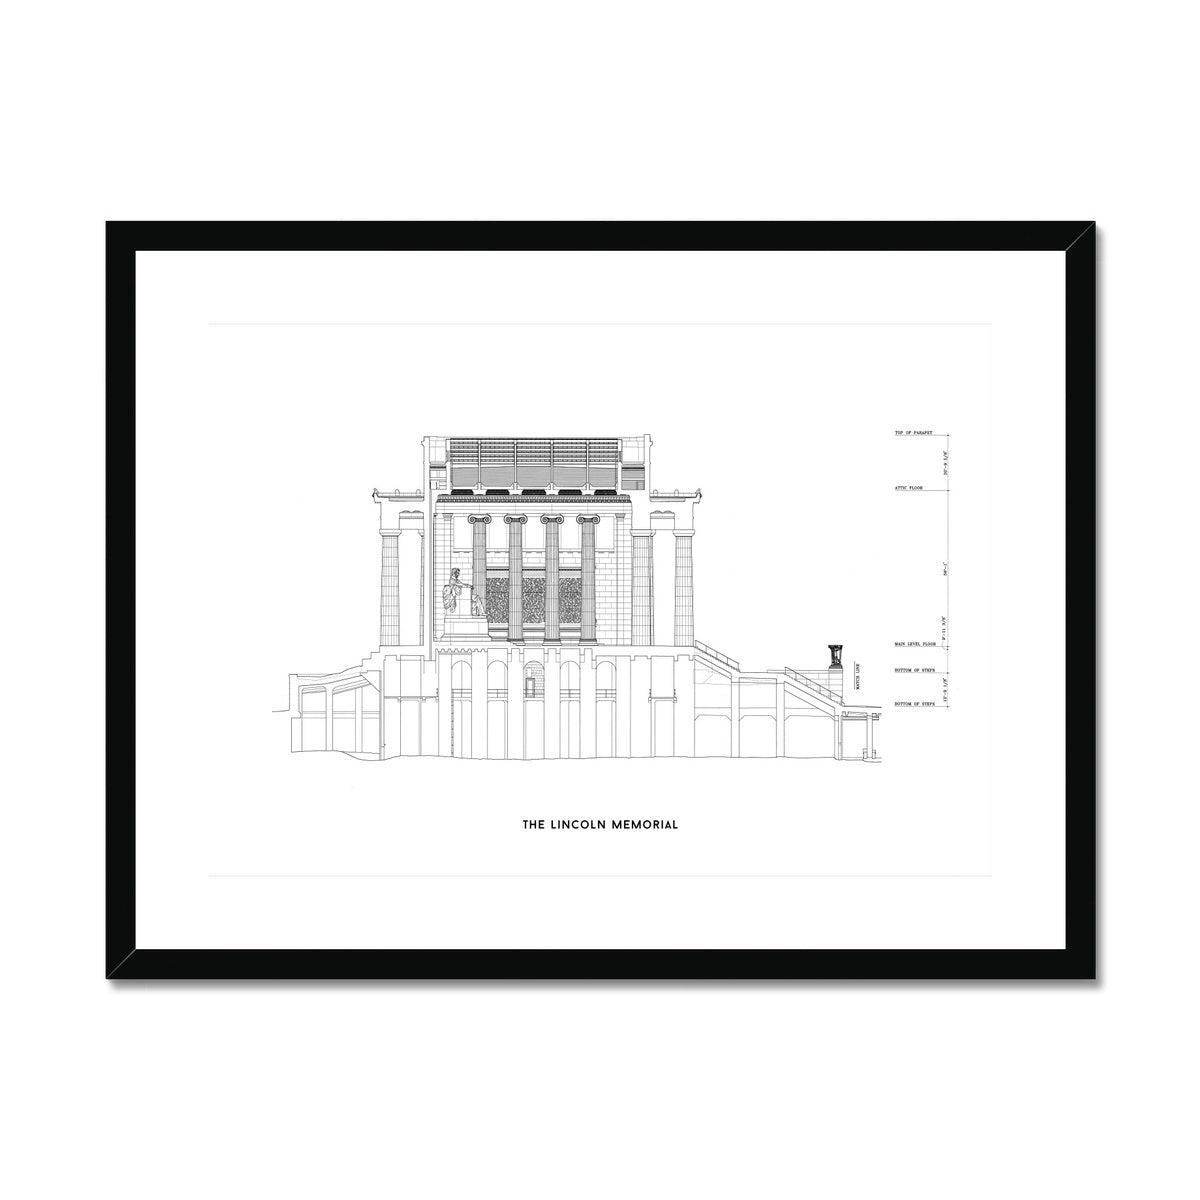 The Lincoln Memorial North Elevation Cross Section - White -  Framed & Mounted Print